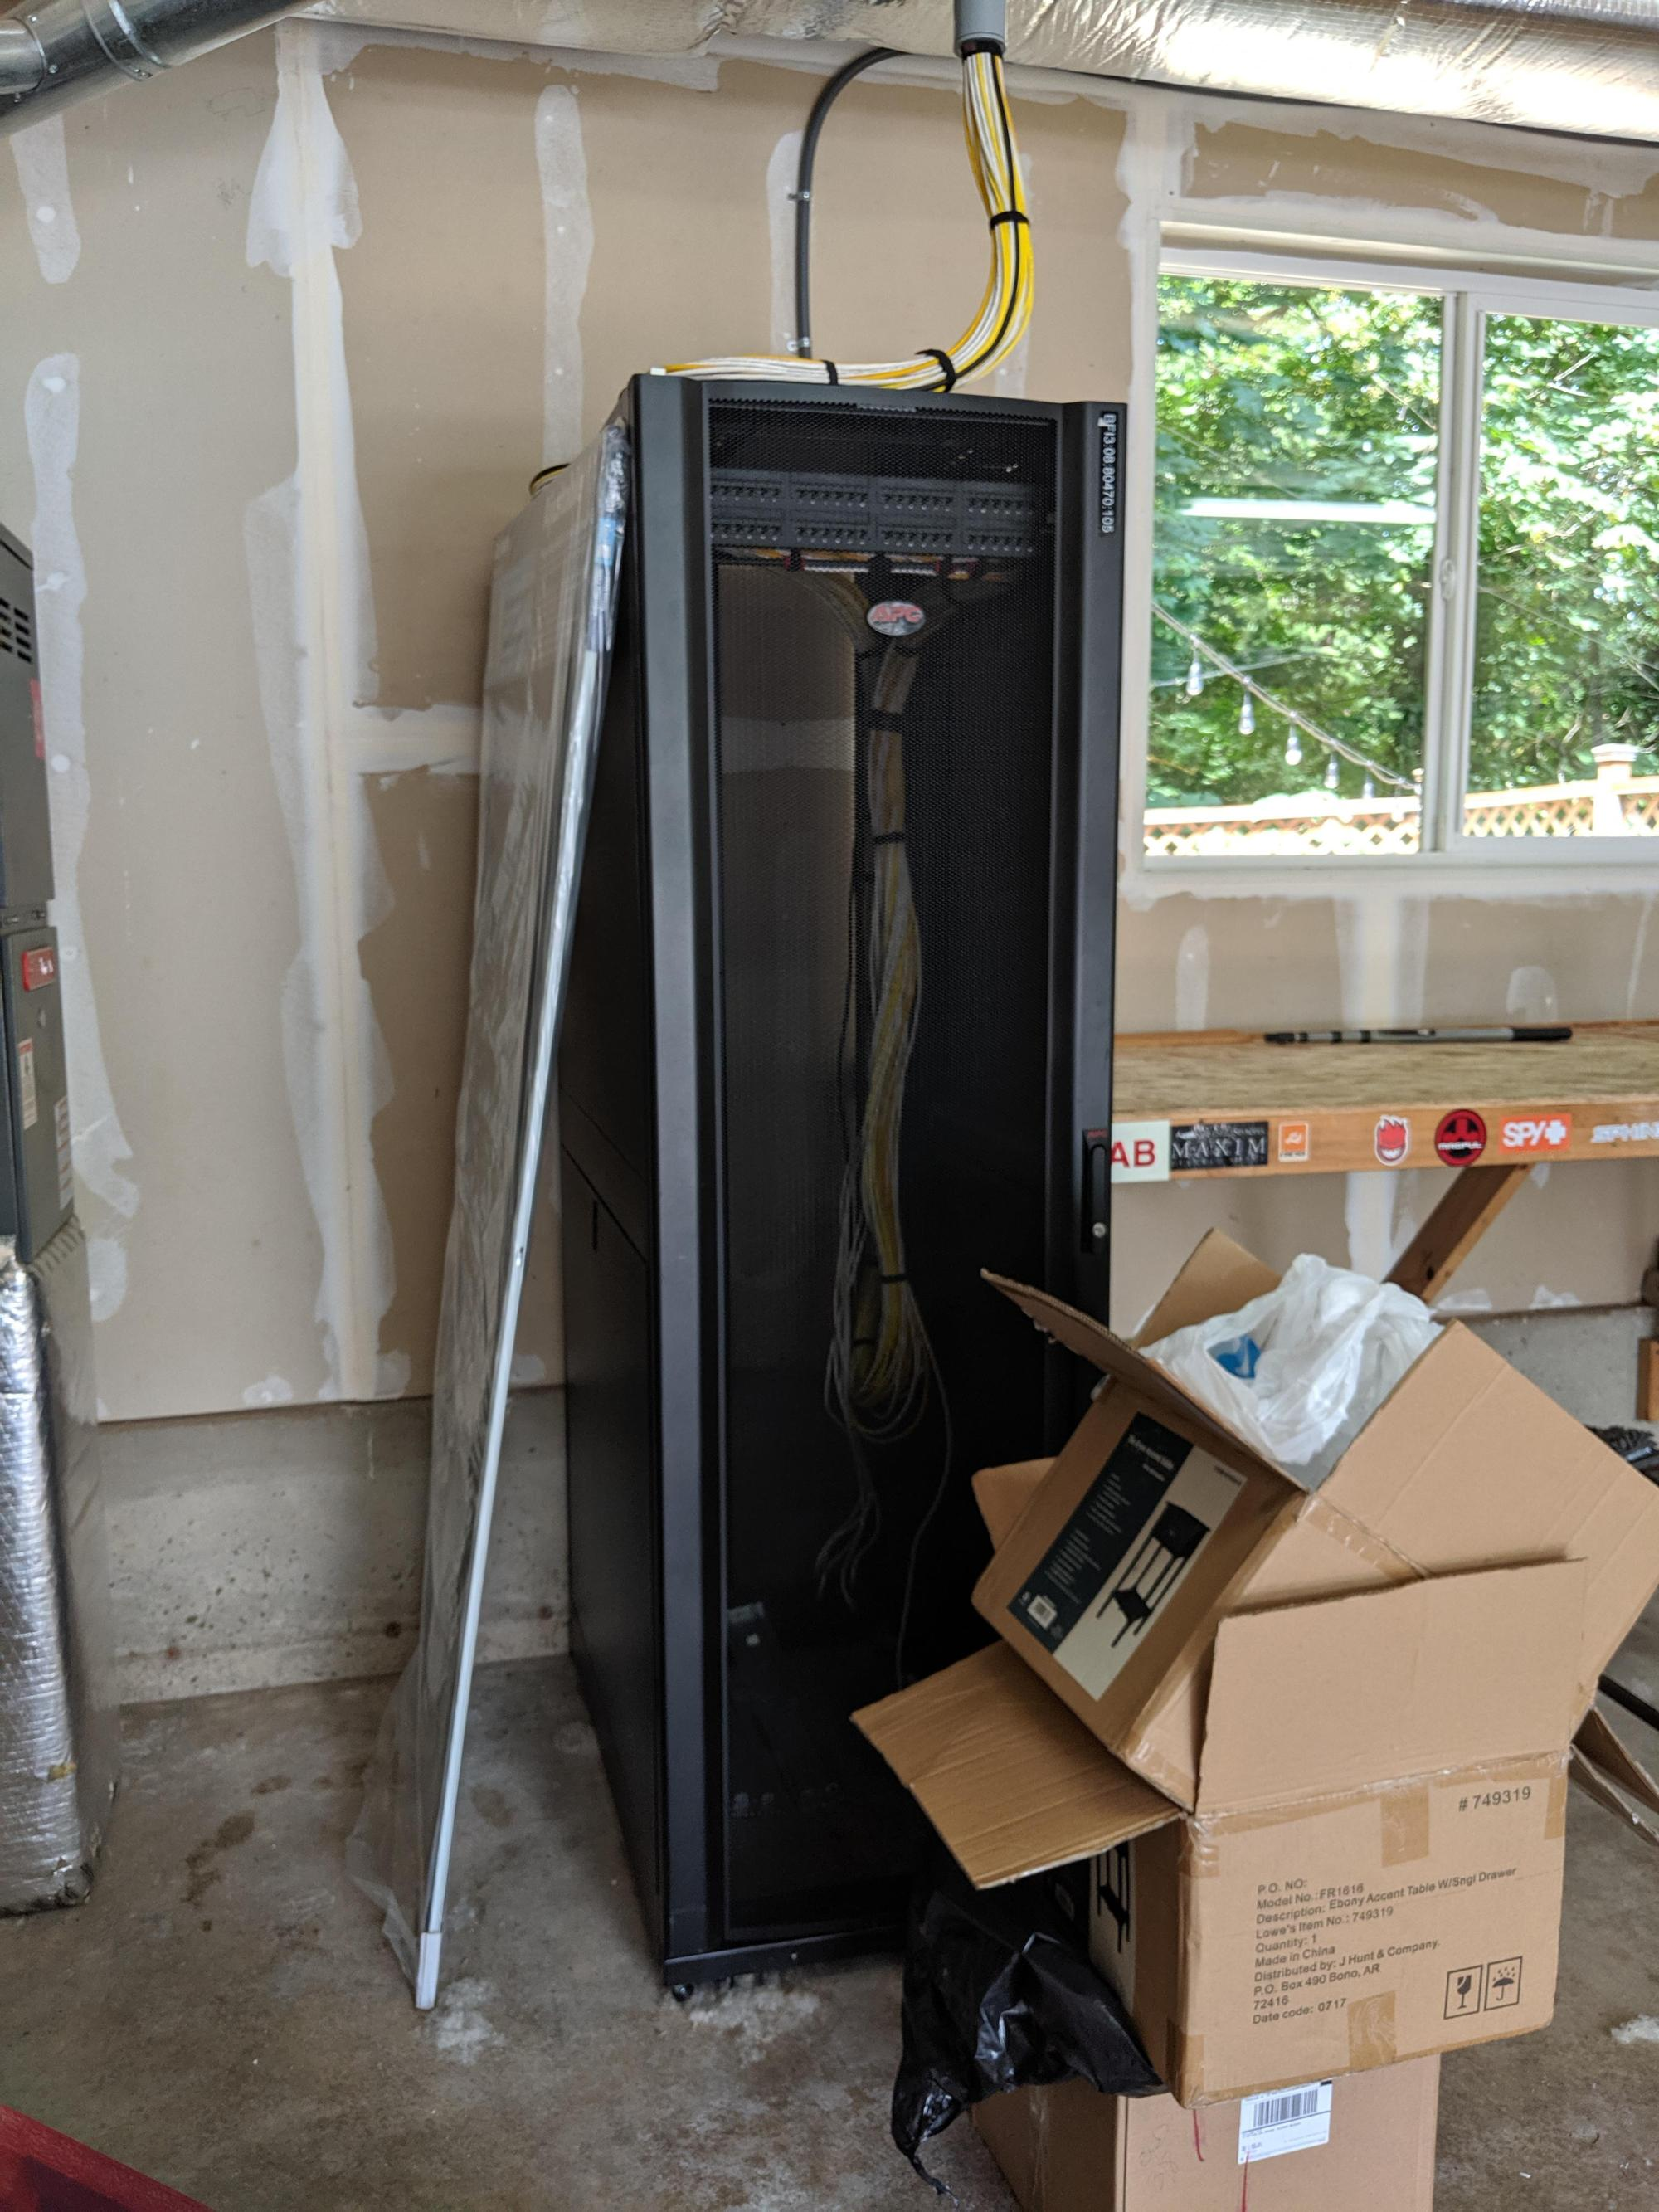 hight resolution of server rack in new house garage what should i do with it